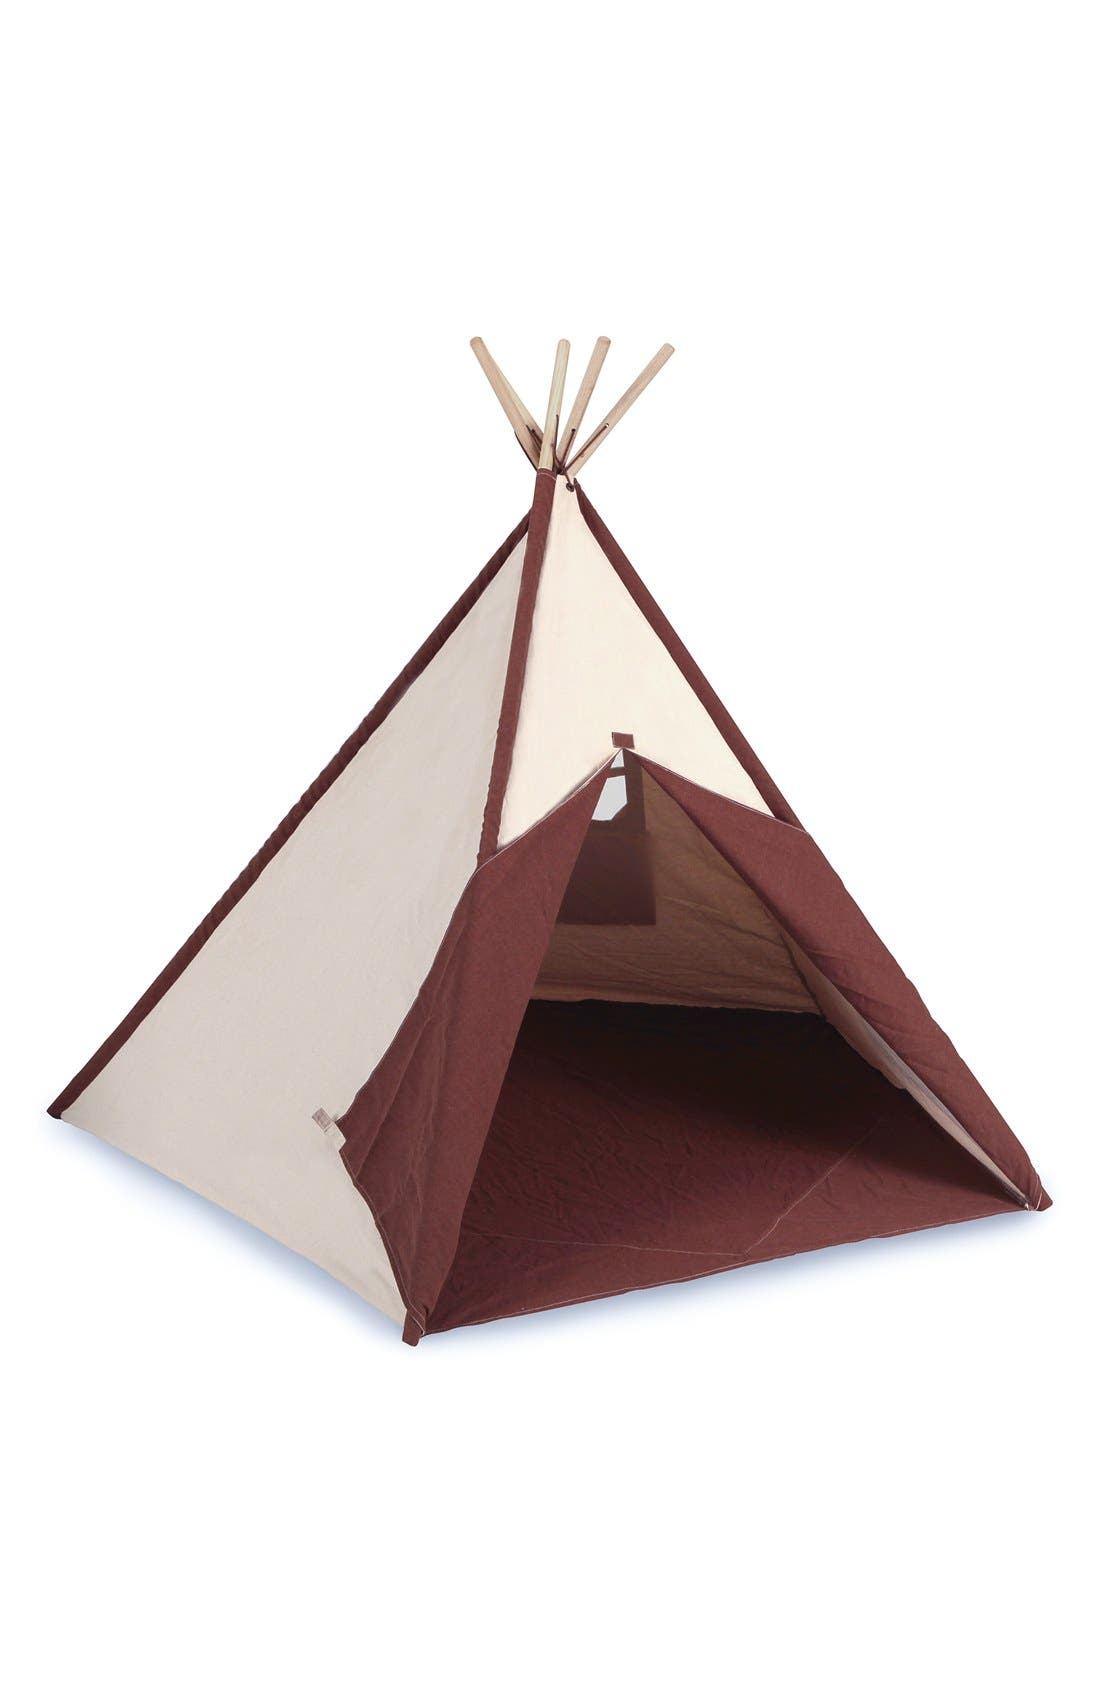 Cotton Canvas Teepee,                         Main,                         color, Beige/ Brown